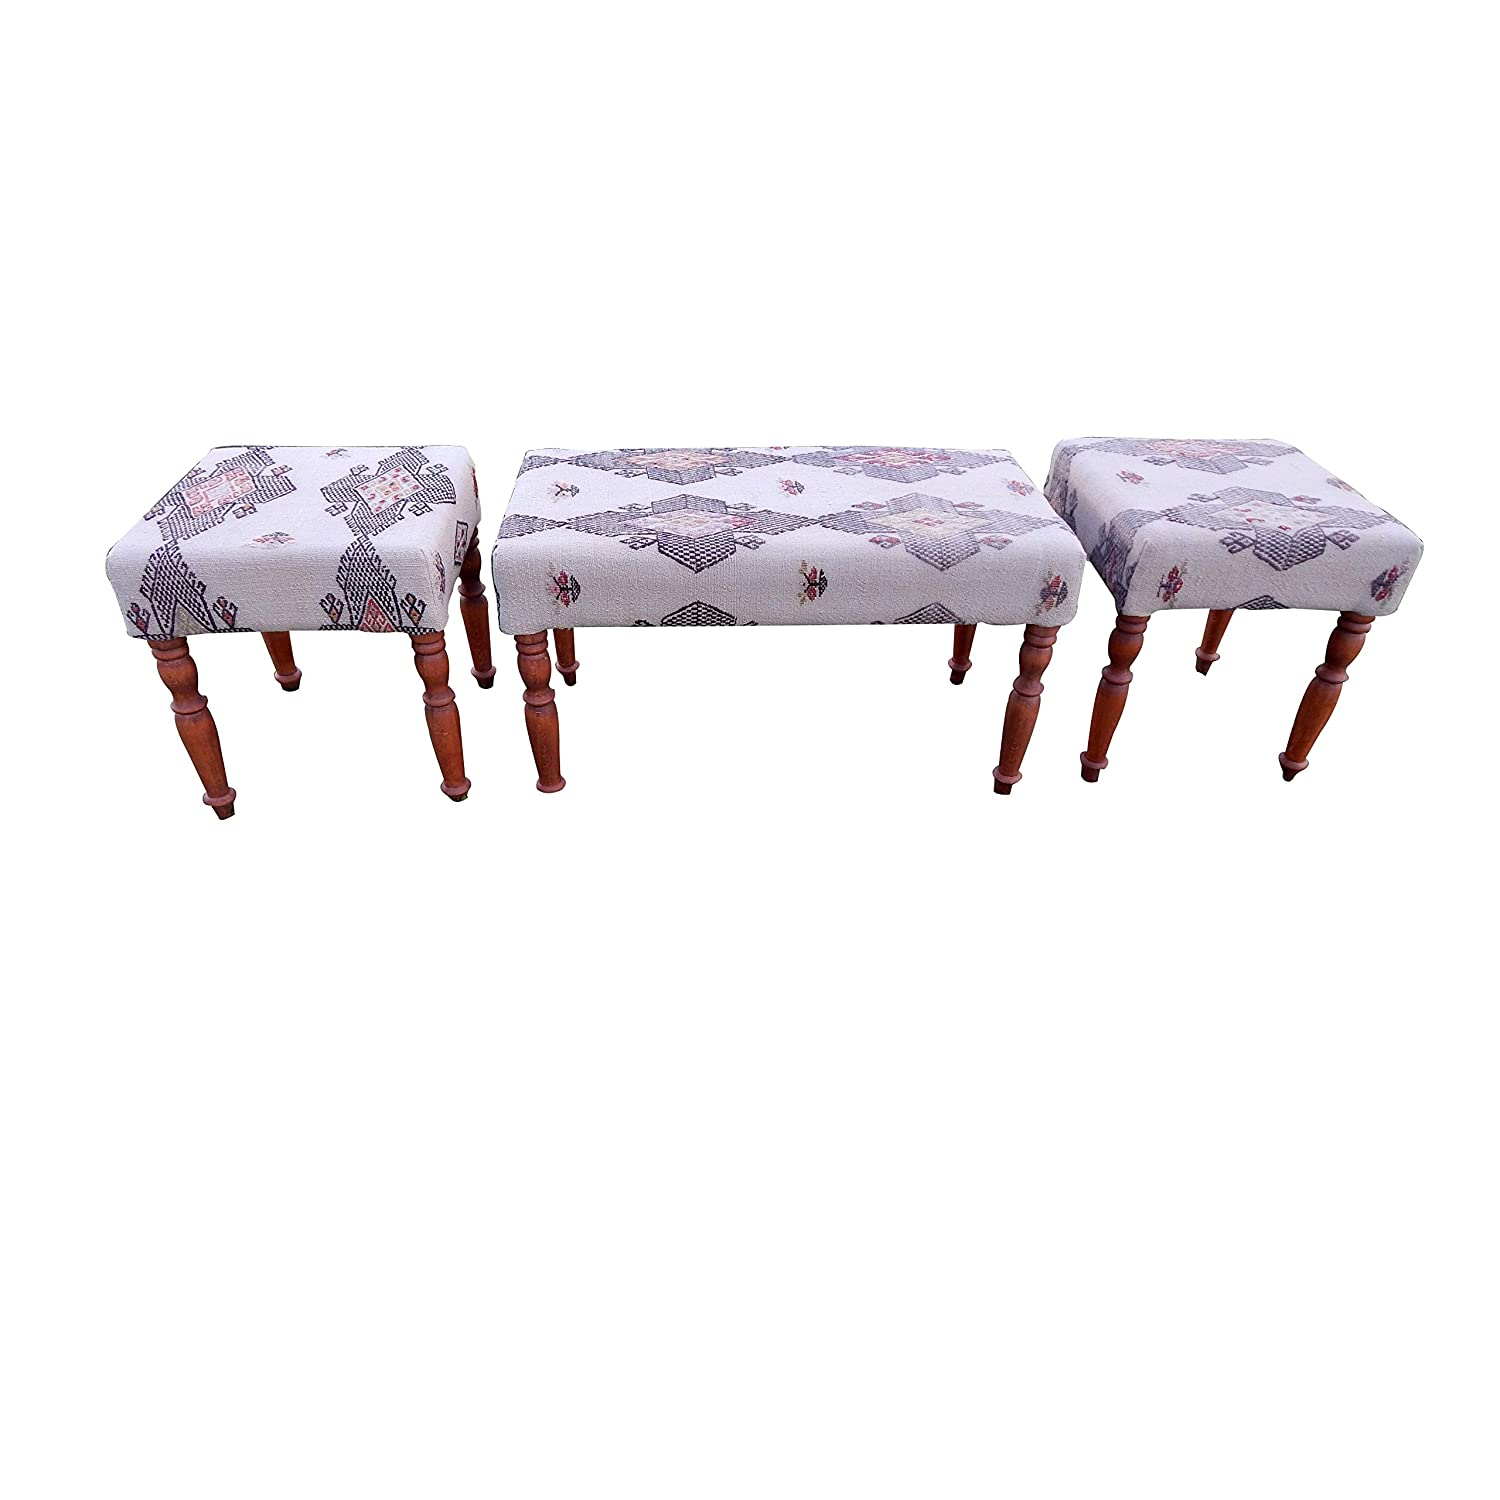 Set of 3 service Turkish Kilim Bench with Ottoman Ranking TOP19 Rug Upholstered